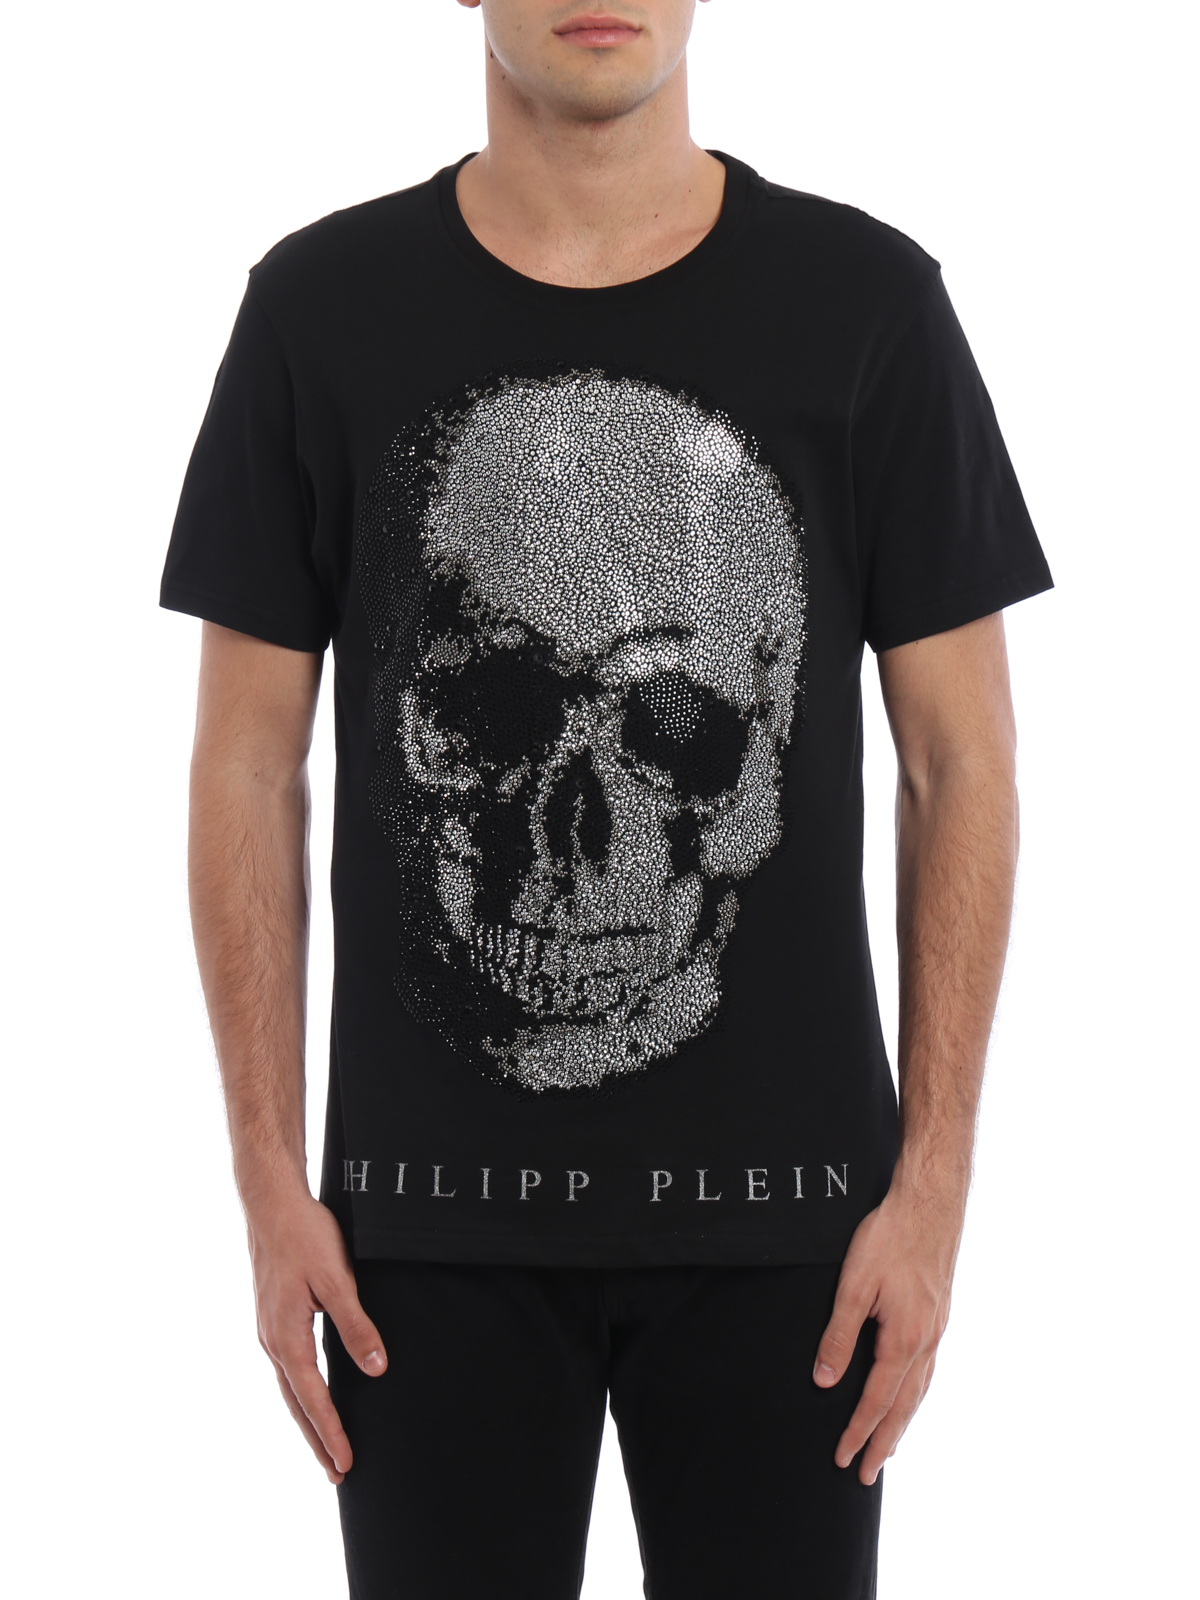 kivo embellished skull t shirt by philipp plein t shirts. Black Bedroom Furniture Sets. Home Design Ideas